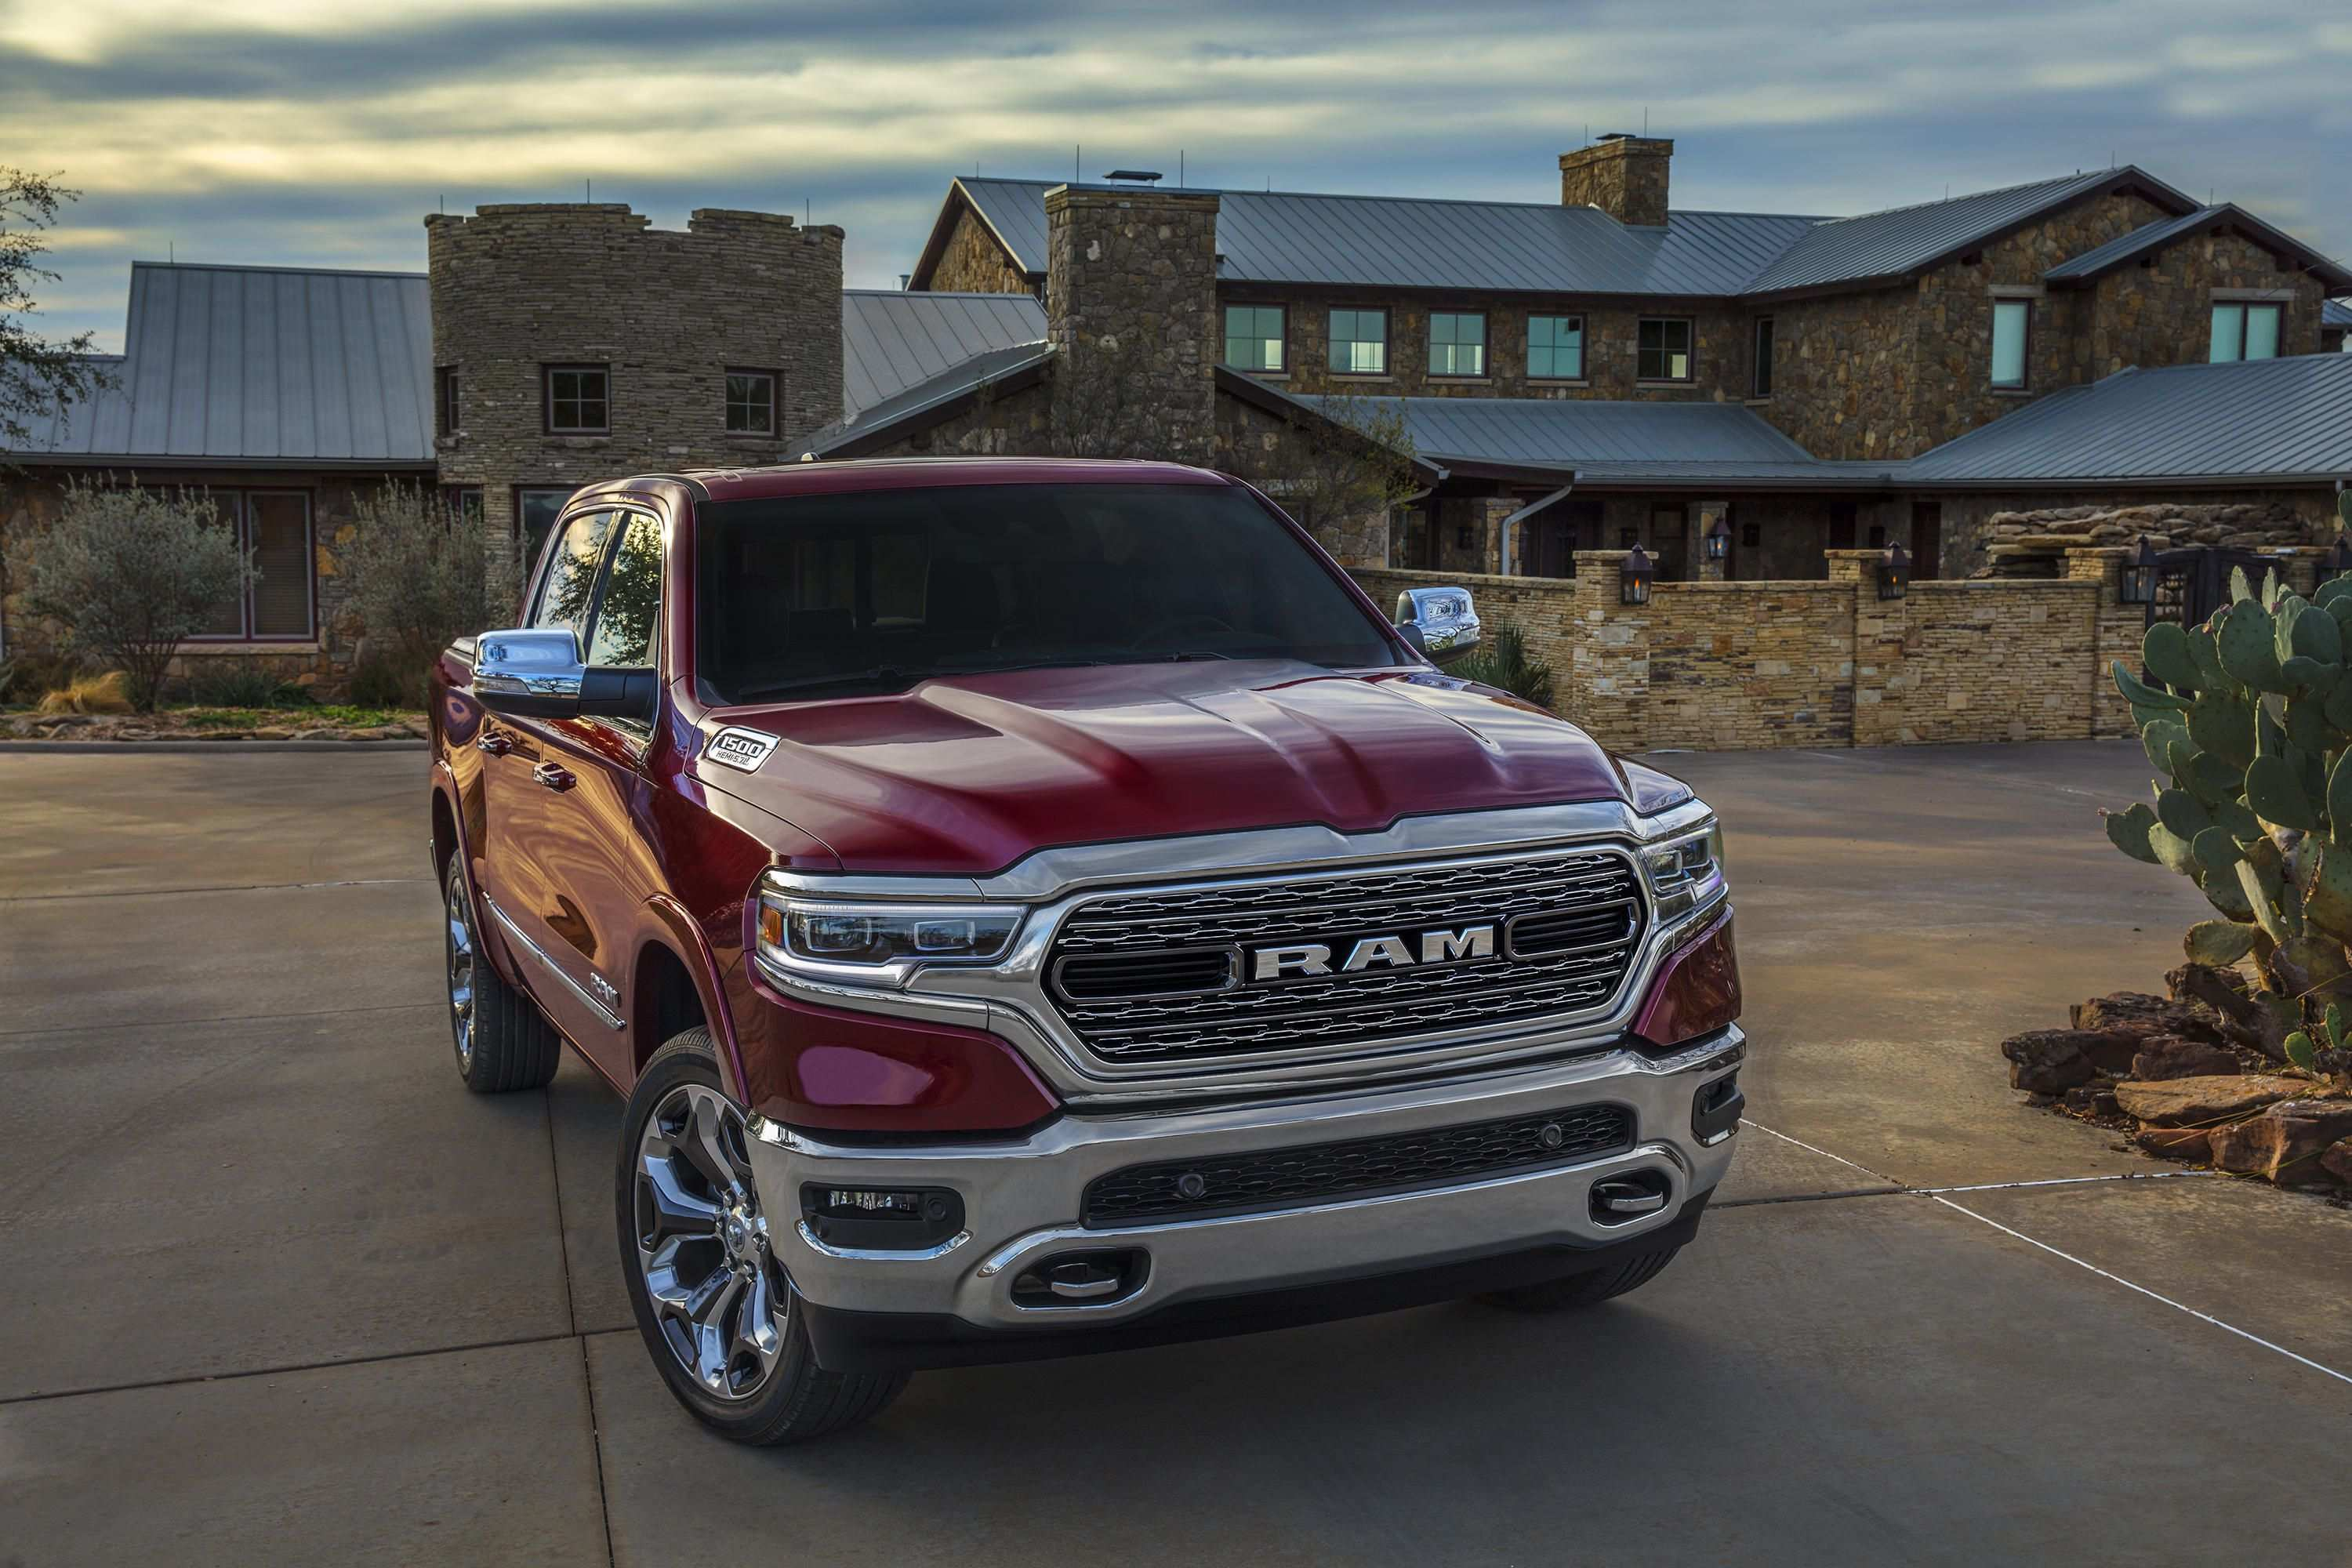 31 All New Best Dodge Laramie 2019 Concept Exterior by Best Dodge Laramie 2019 Concept